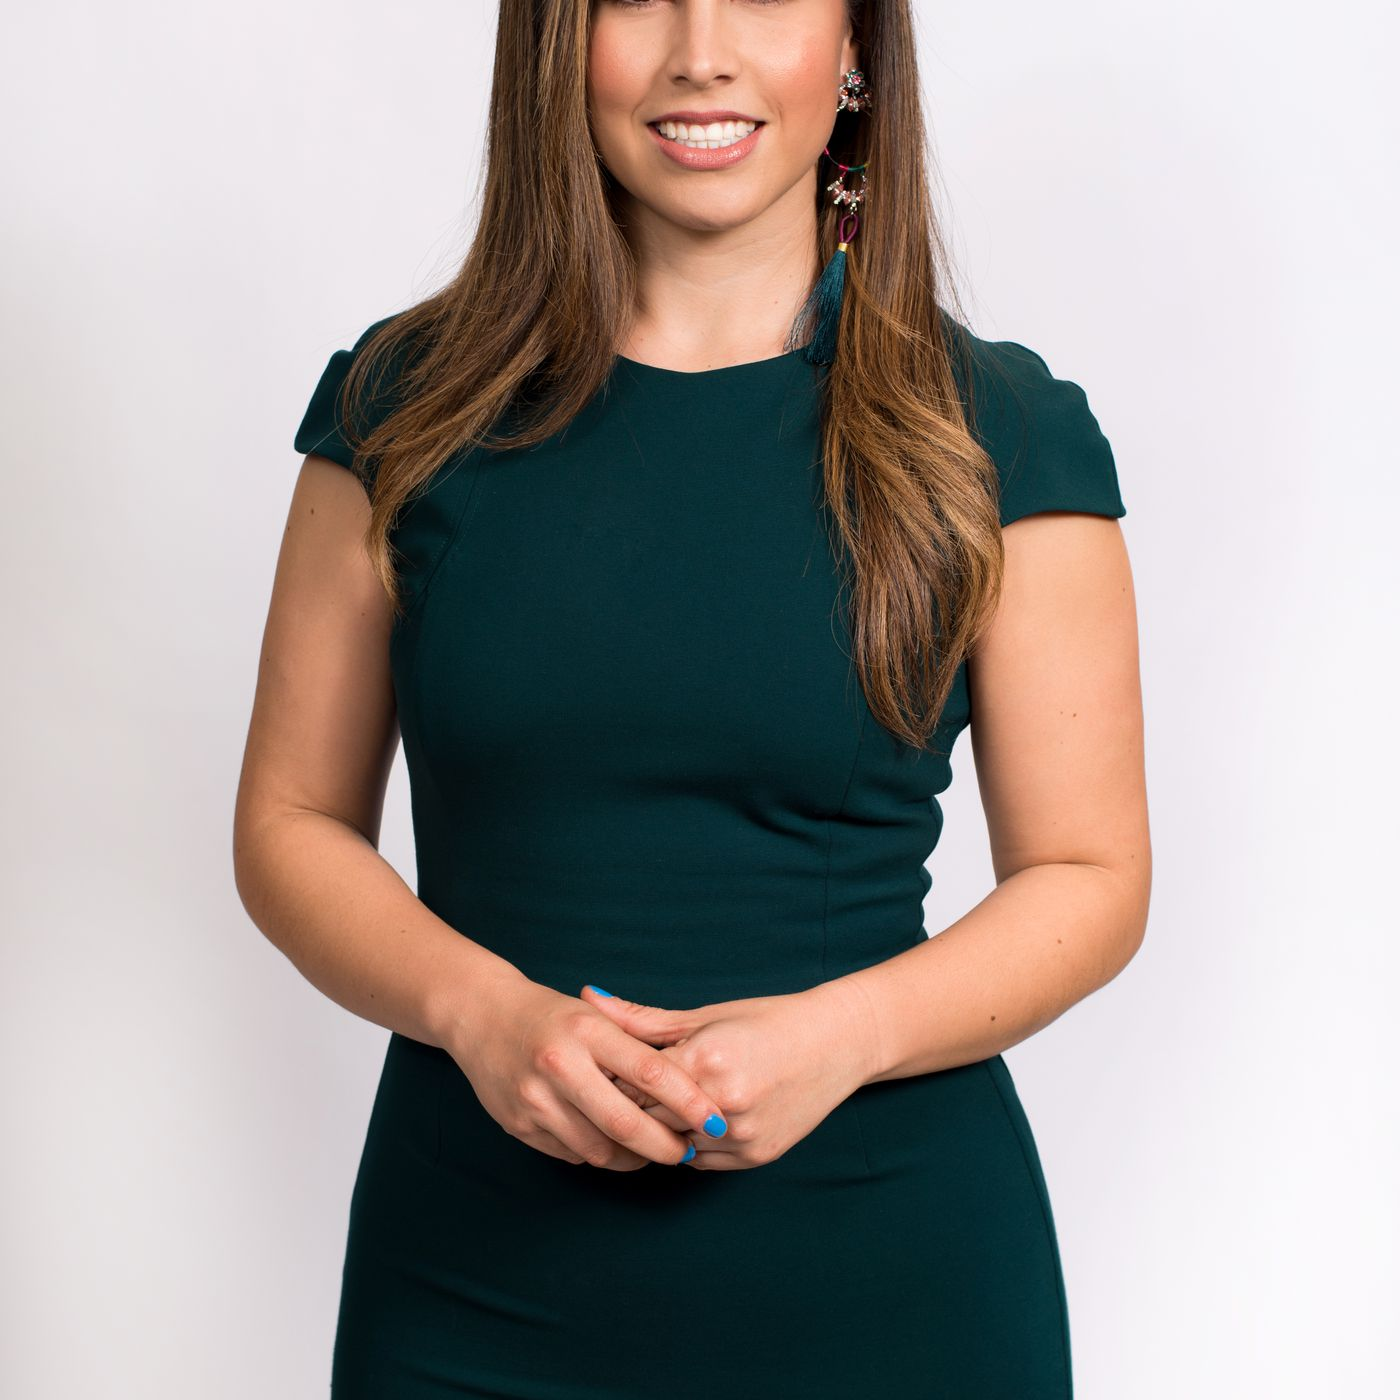 Univision Deportes' Ana Caty Hernández talks about her